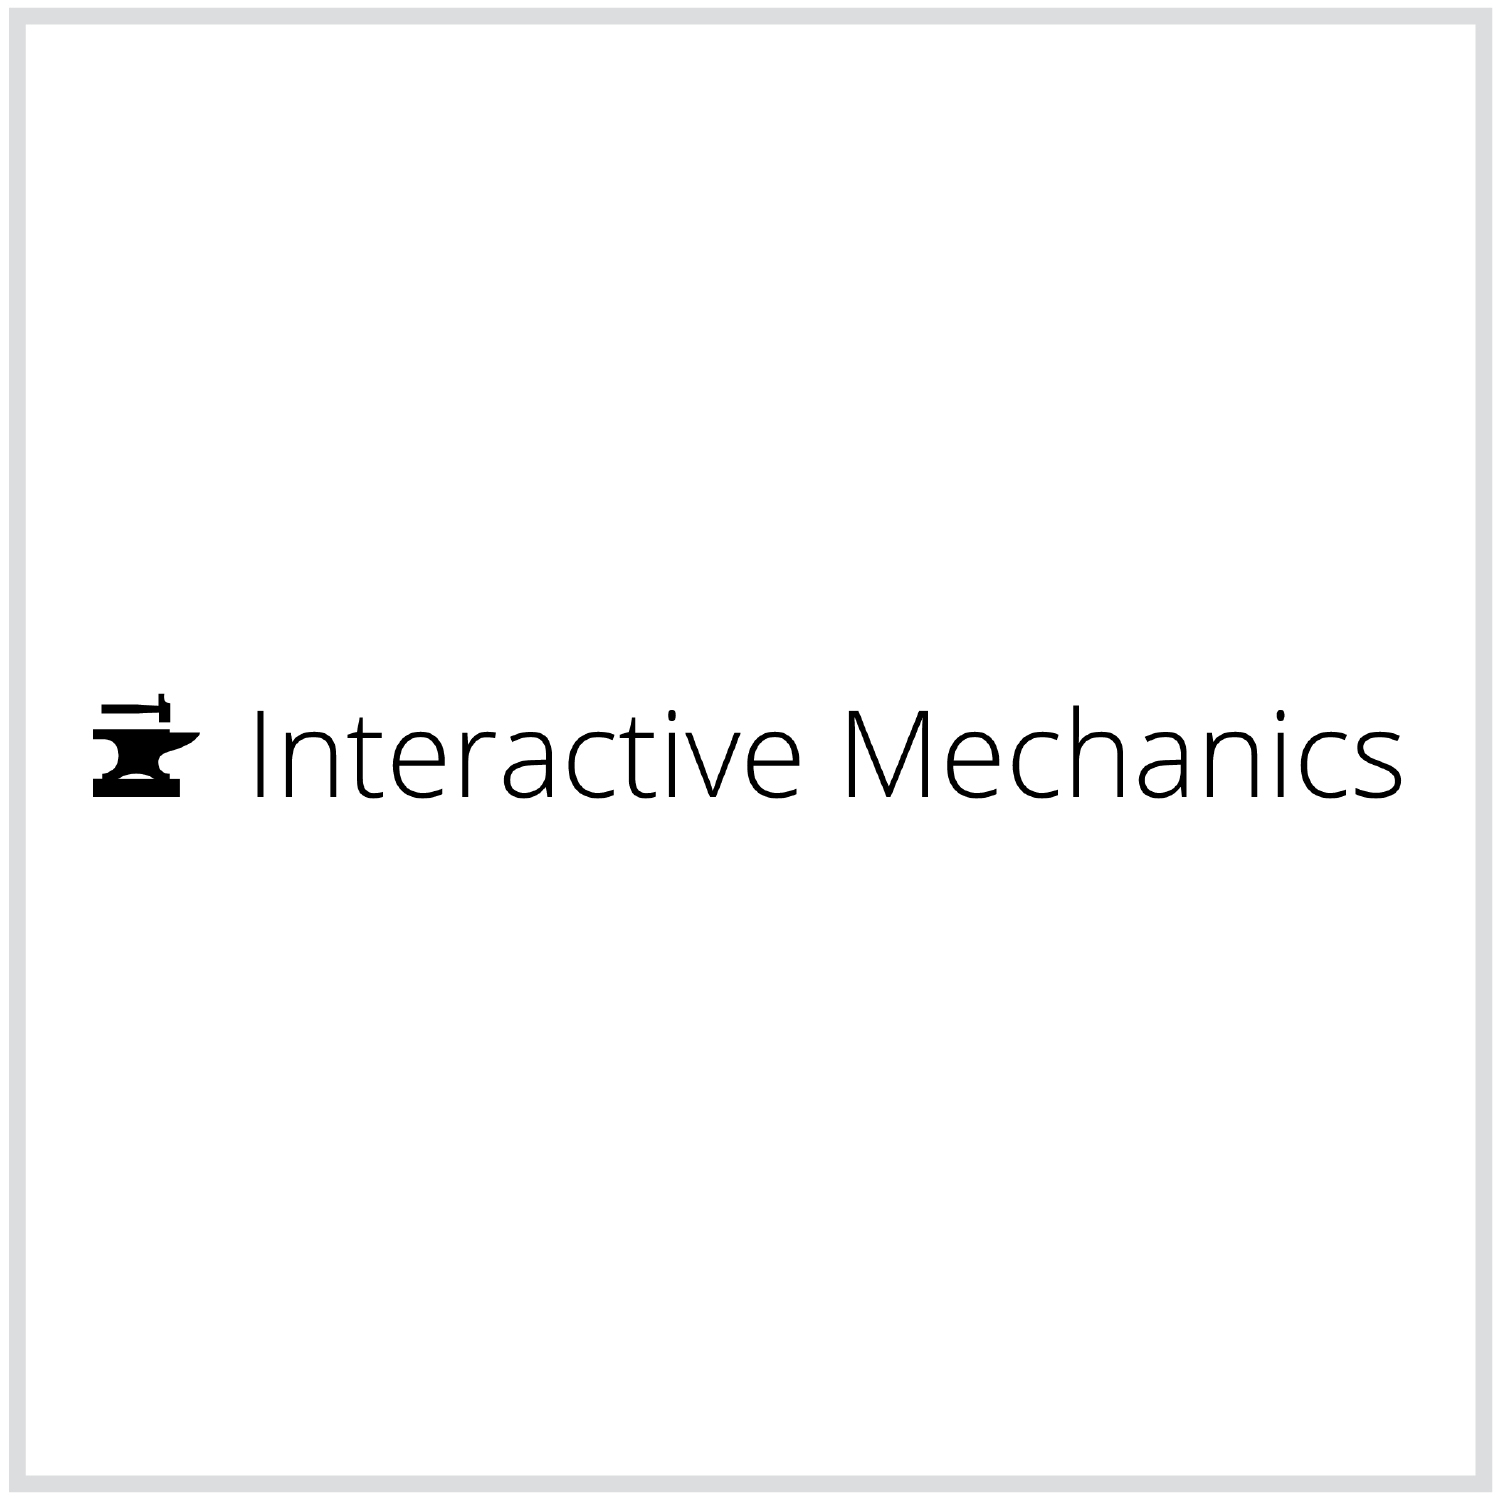 Interactive Mechanics  Interactive Mechanics is a digital design firm that partners with cultural and educational organizations on design, development, user experience, and digital strategy. Our team builds beautiful, user-centered digital projects for web, mobile, and in-gallery exhibits that inspire your audiences. We work with museums, historic sites, libraries, and archives—organizations that emphasize the education, empowerment, and enjoyment of their audiences. Great user experience is the core of every one of our projects, and we ensure all our projects are sustainable by providing documentation, training, and ongoing support, as well as free monthly webinars. Recent work includes Prisons Today: Questions in the Age of Mass Incarceration (Eastern State Penitentiary), The Public Classroom: Science & Race (Penn Museum of Archeology & Anthropology), The Great Migration: A City Transformed (Scribe Video Center), and Wait-Play-Learn Digital Experiences (Children's Hospital of Philadelphia).  www.interactivemechanics.com